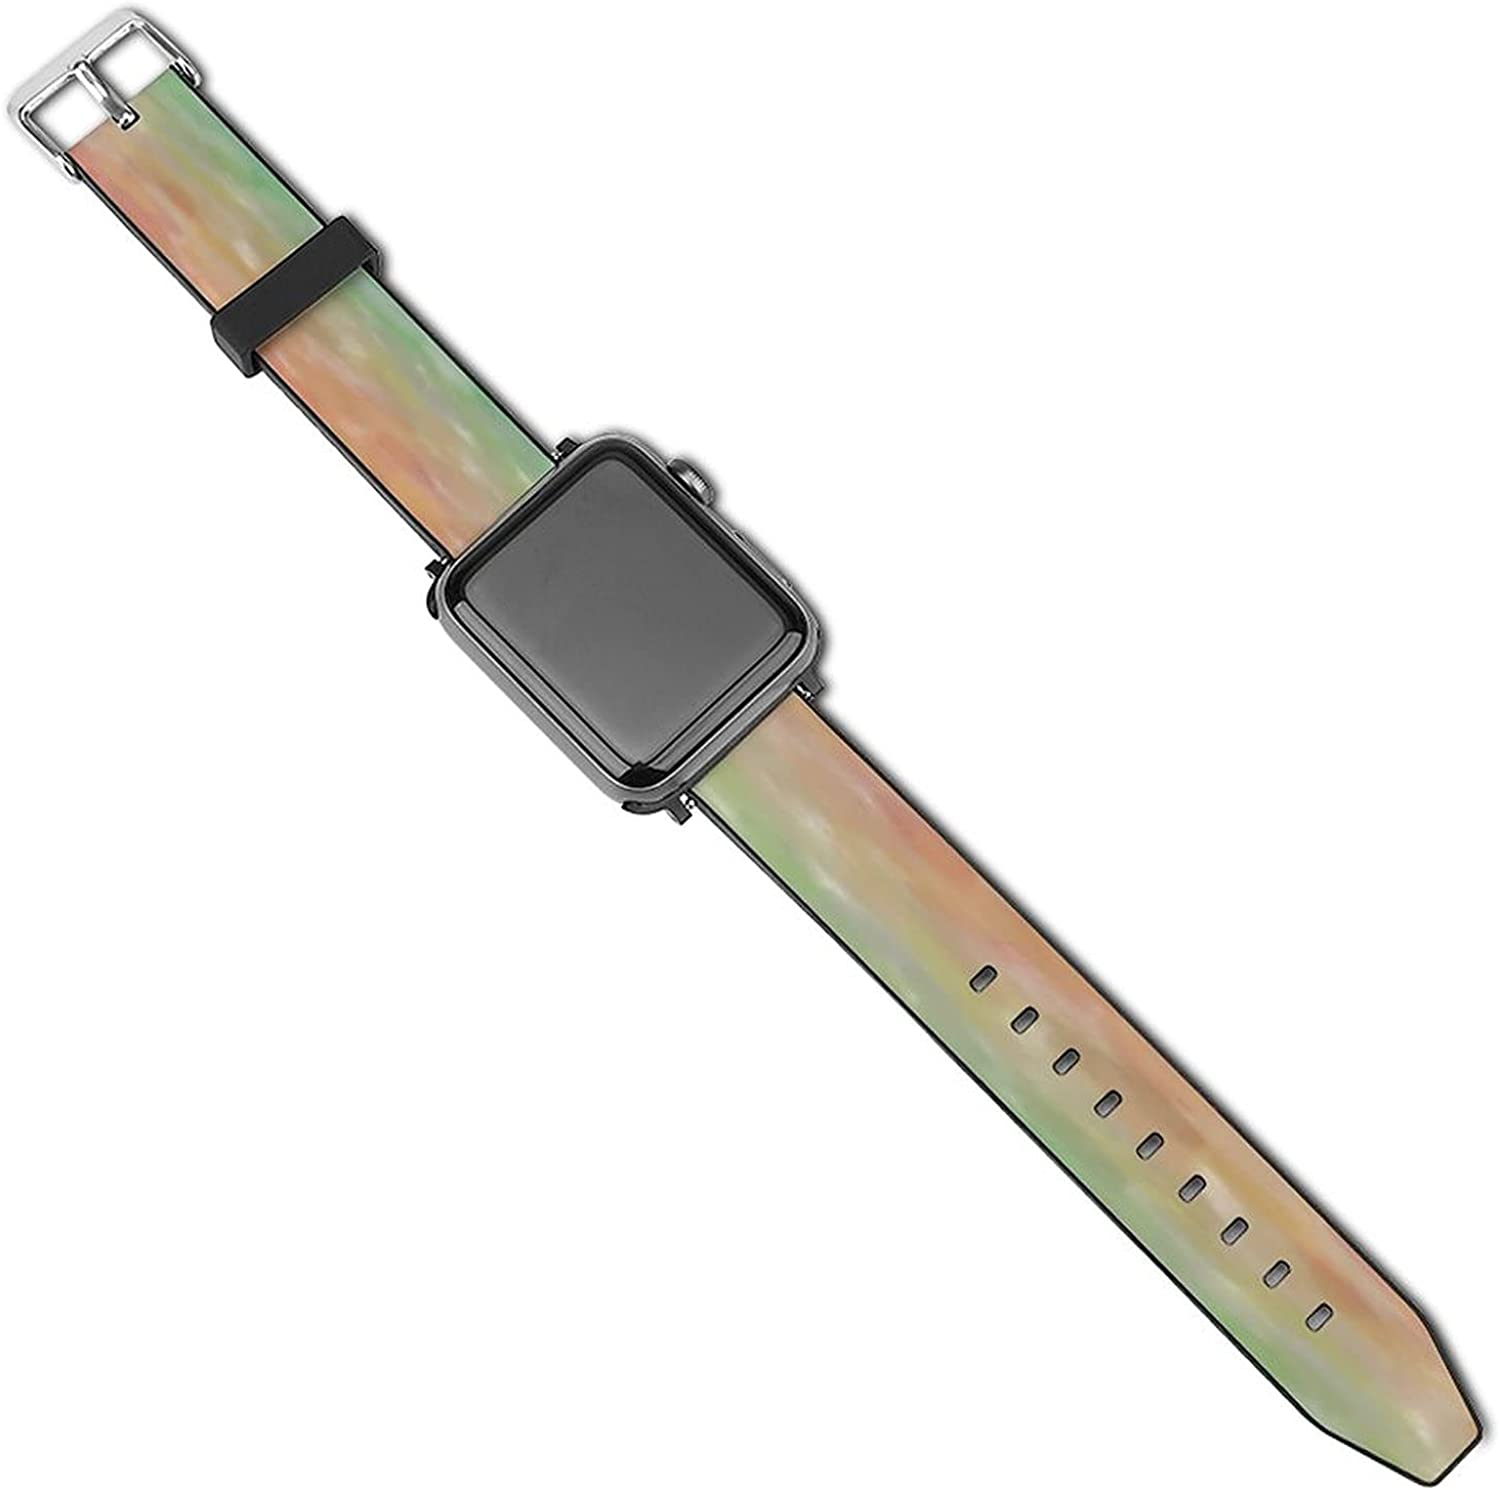 Unisex Adjustable Elastic Band Compatible with Apple Watch Bands 38mm 40mm 42mm 44mm Stretchy Soft Strap Replacement Wristband for iWatch Series 5/4/3/2/1